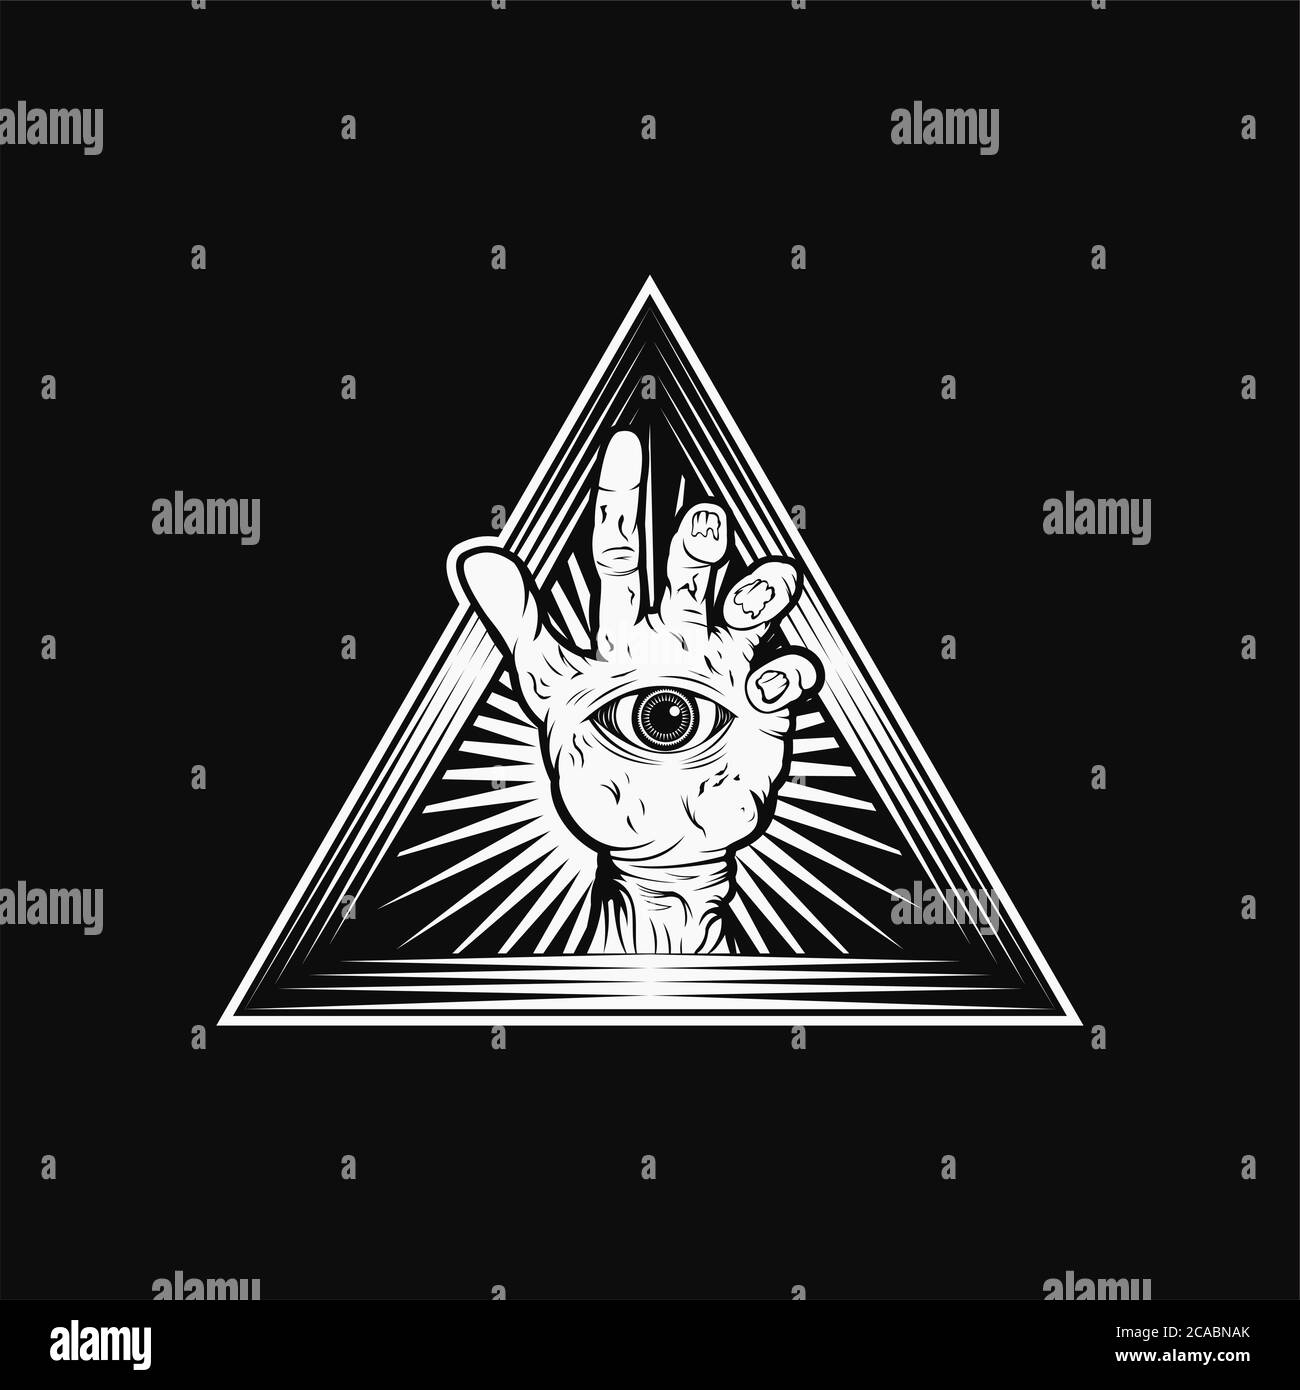 Zombie Hand Triangle vector illustration amazing design for your company or brand Stock Vector